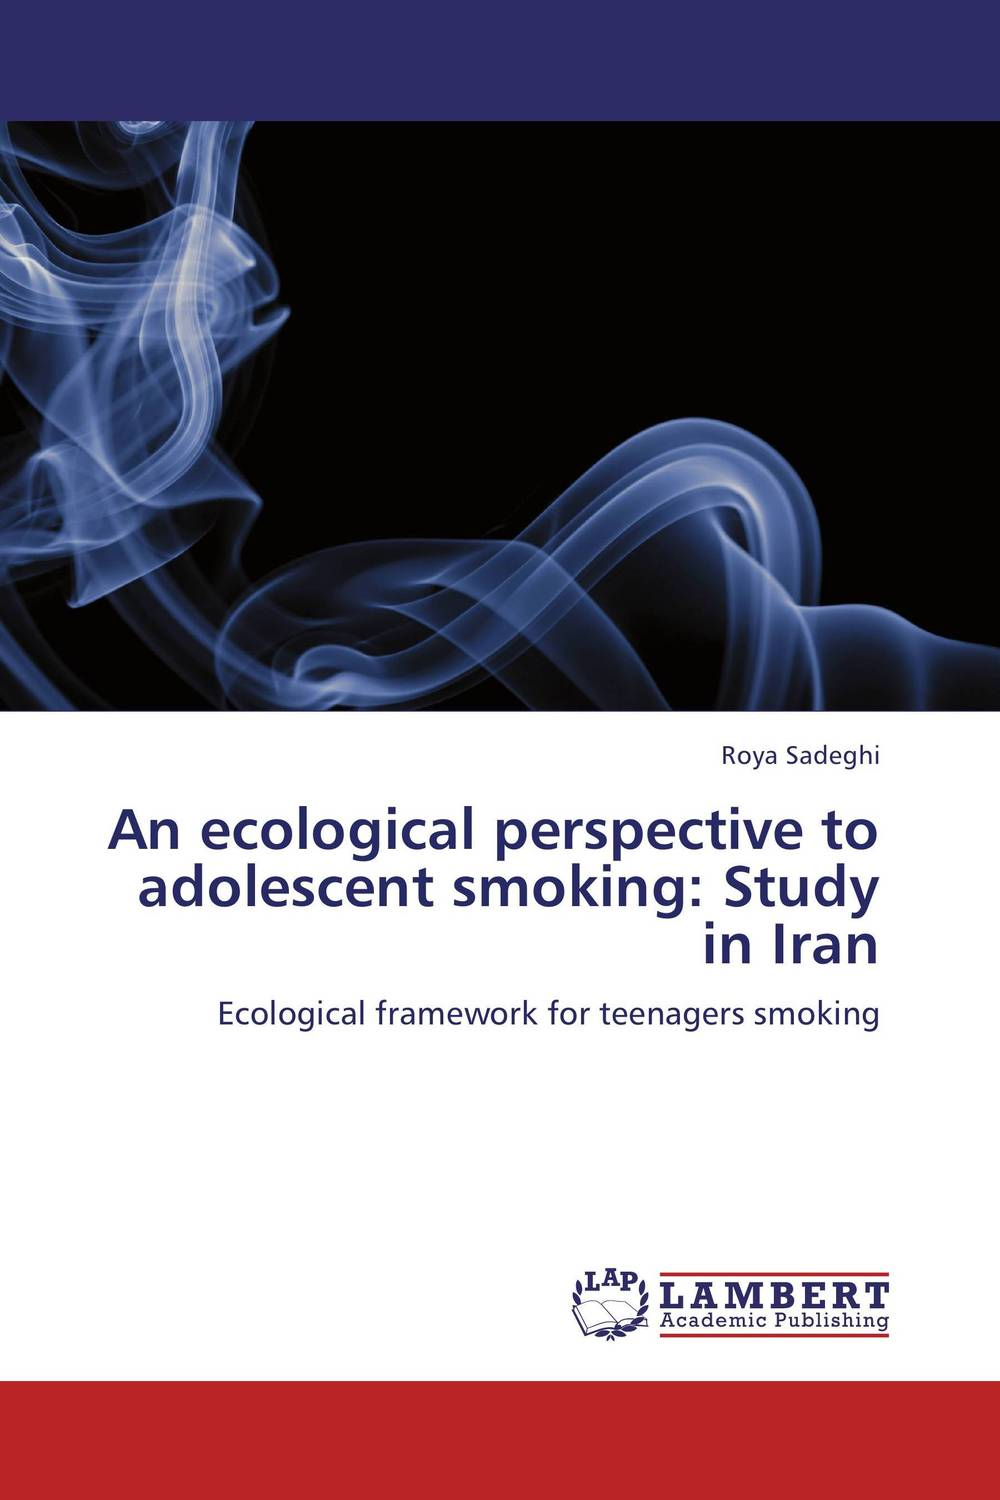 An ecological perspective to adolescent smoking: Study in Iran